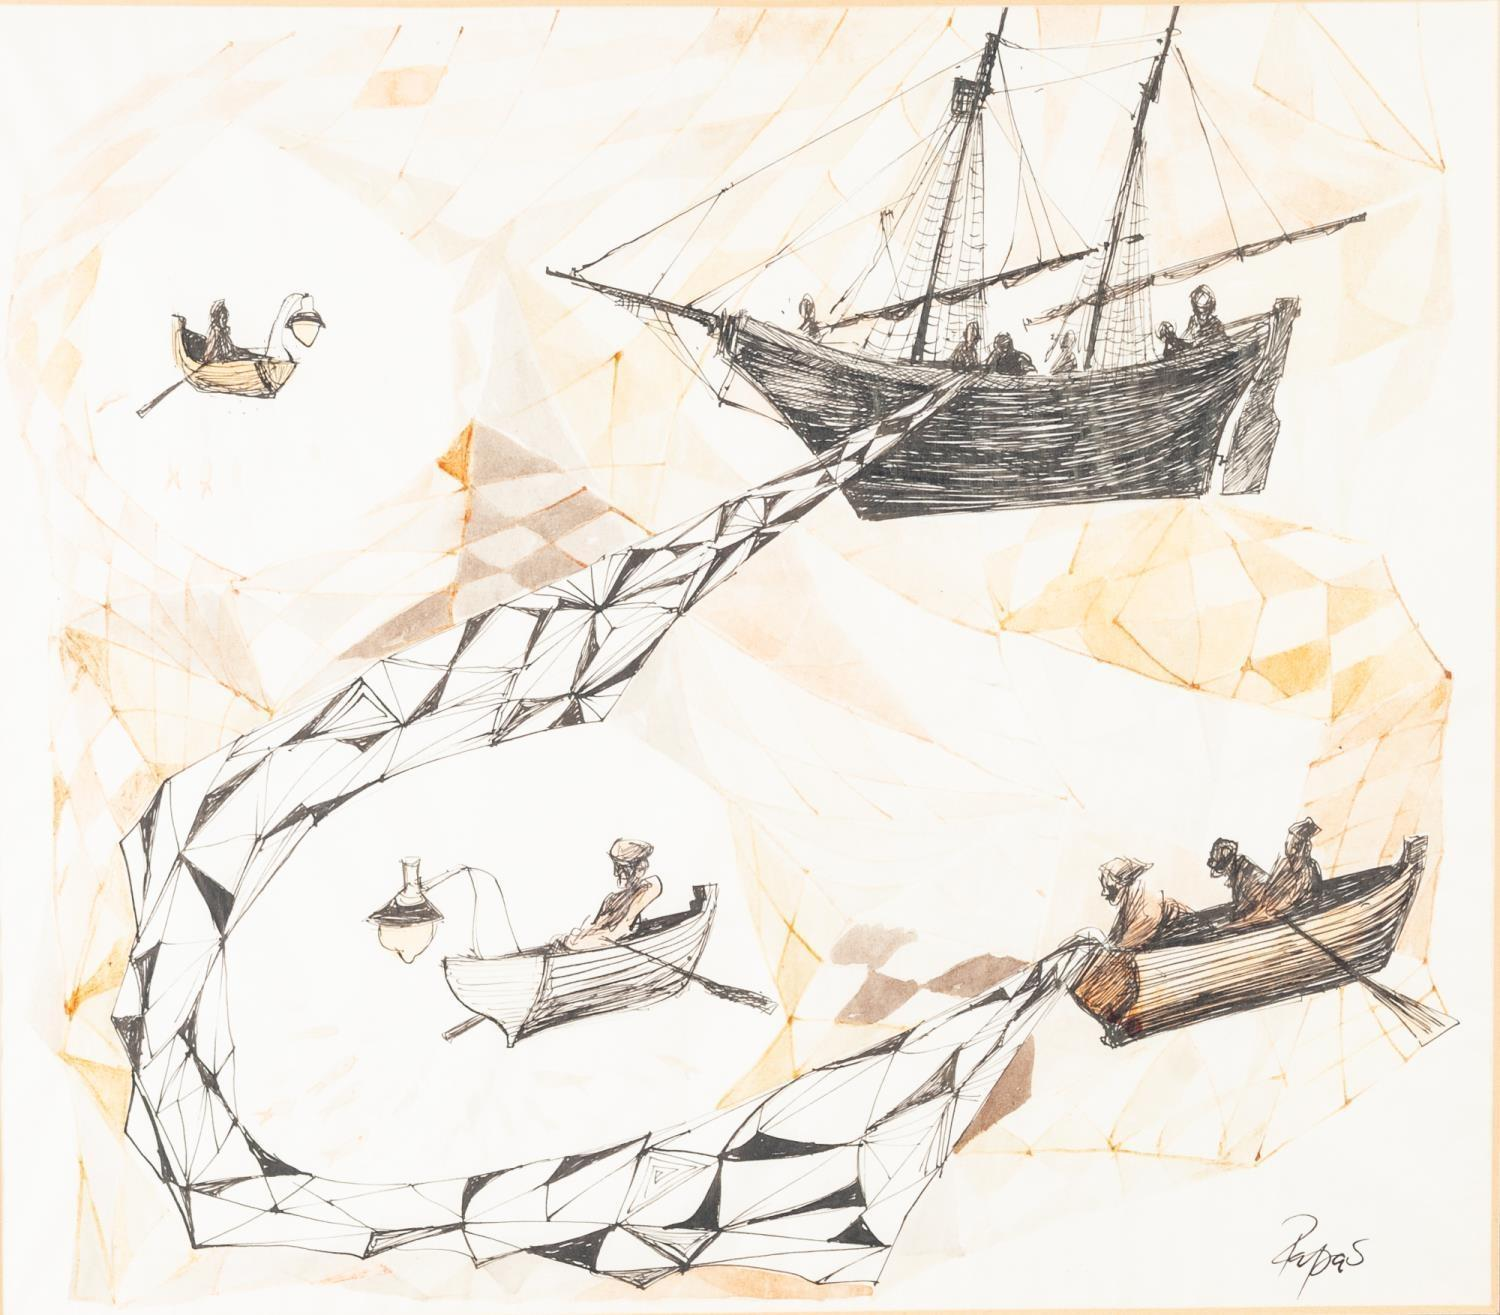 Lot 200 - WILLIAM PAPAS (1927-2000) PEN, BLACK INK AND WATERCOLOUR DRAWING 'Elias the Fisherman', an